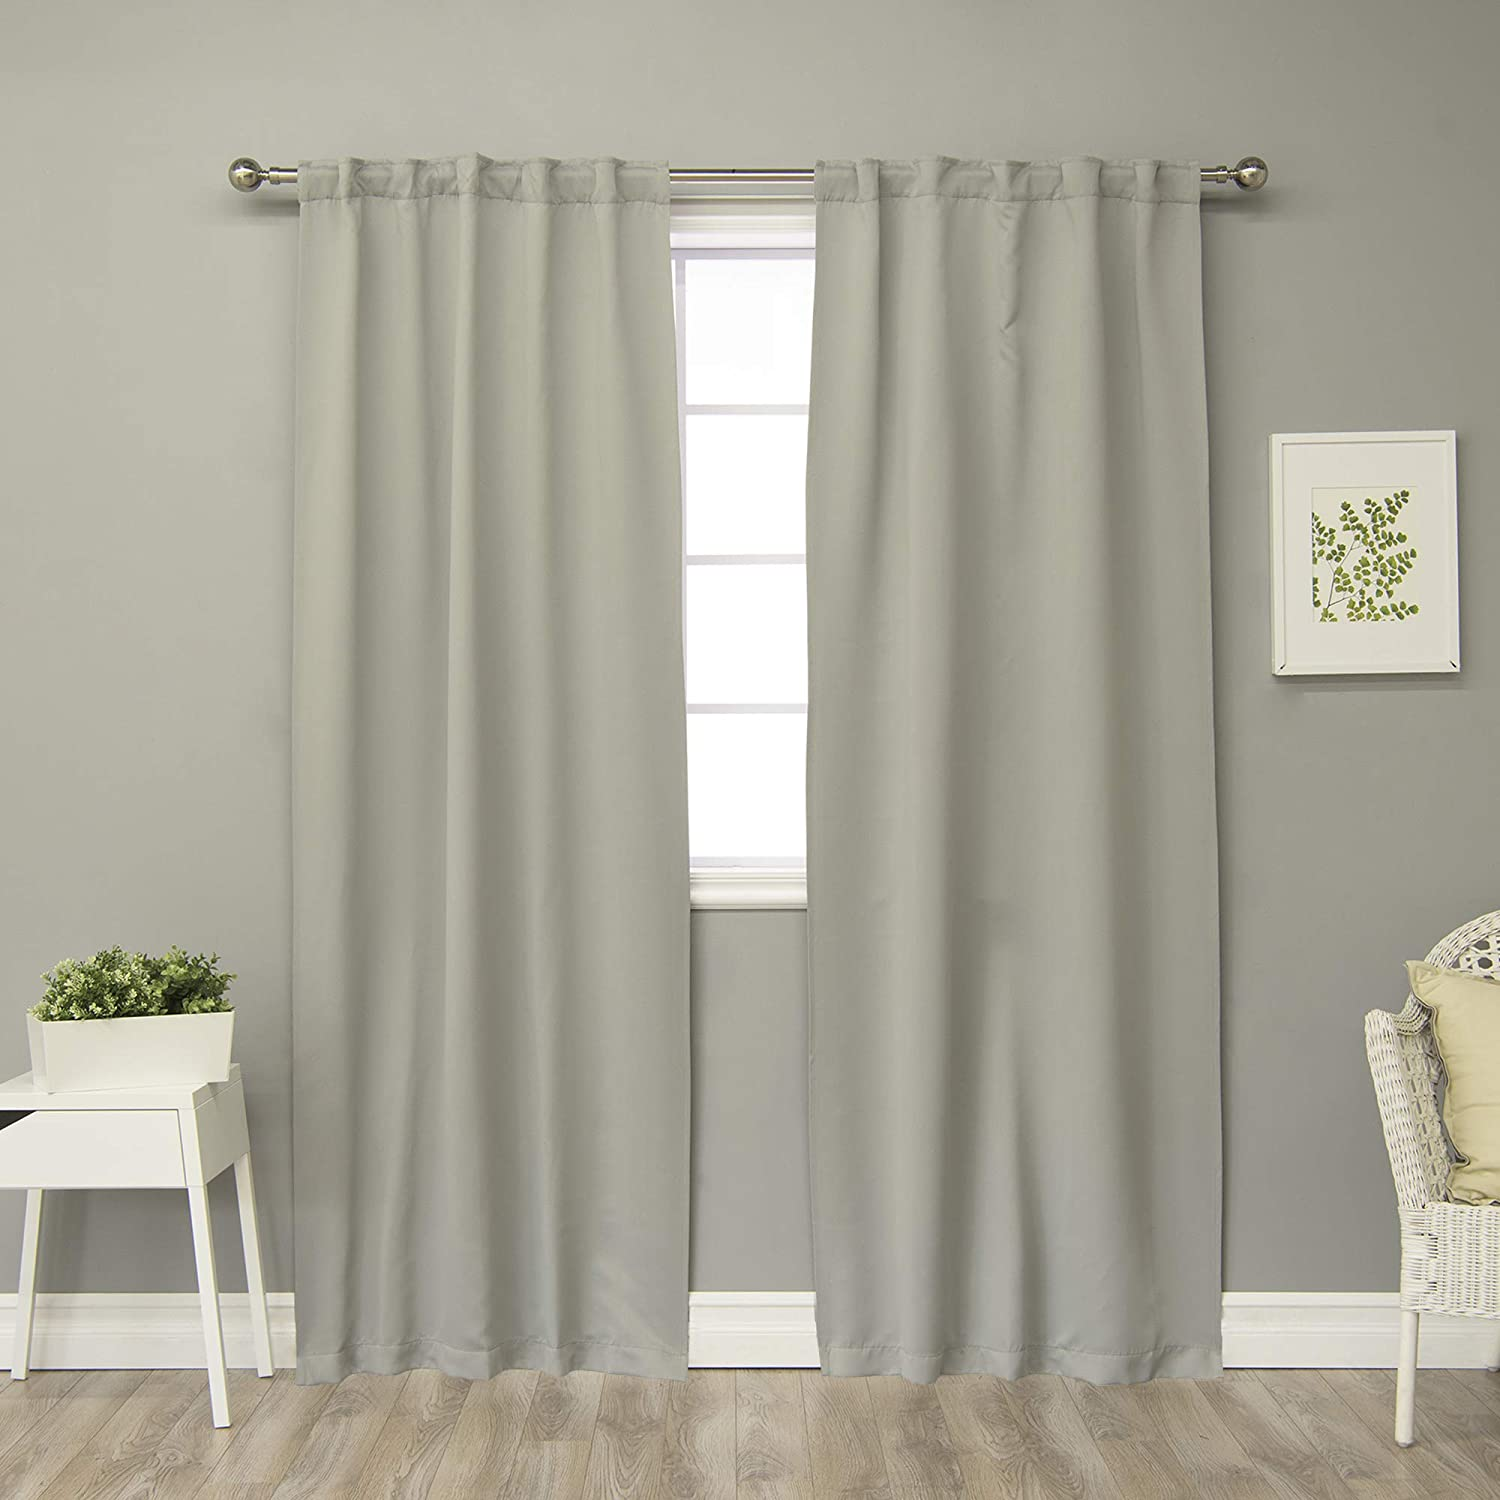 """Best Home Fashion Thermal Insulated Blackout Curtains - Back Tab/Rod Pocket 40W - (Set of 2 Panels) (40"""" W x 84"""" L, Dove)"""